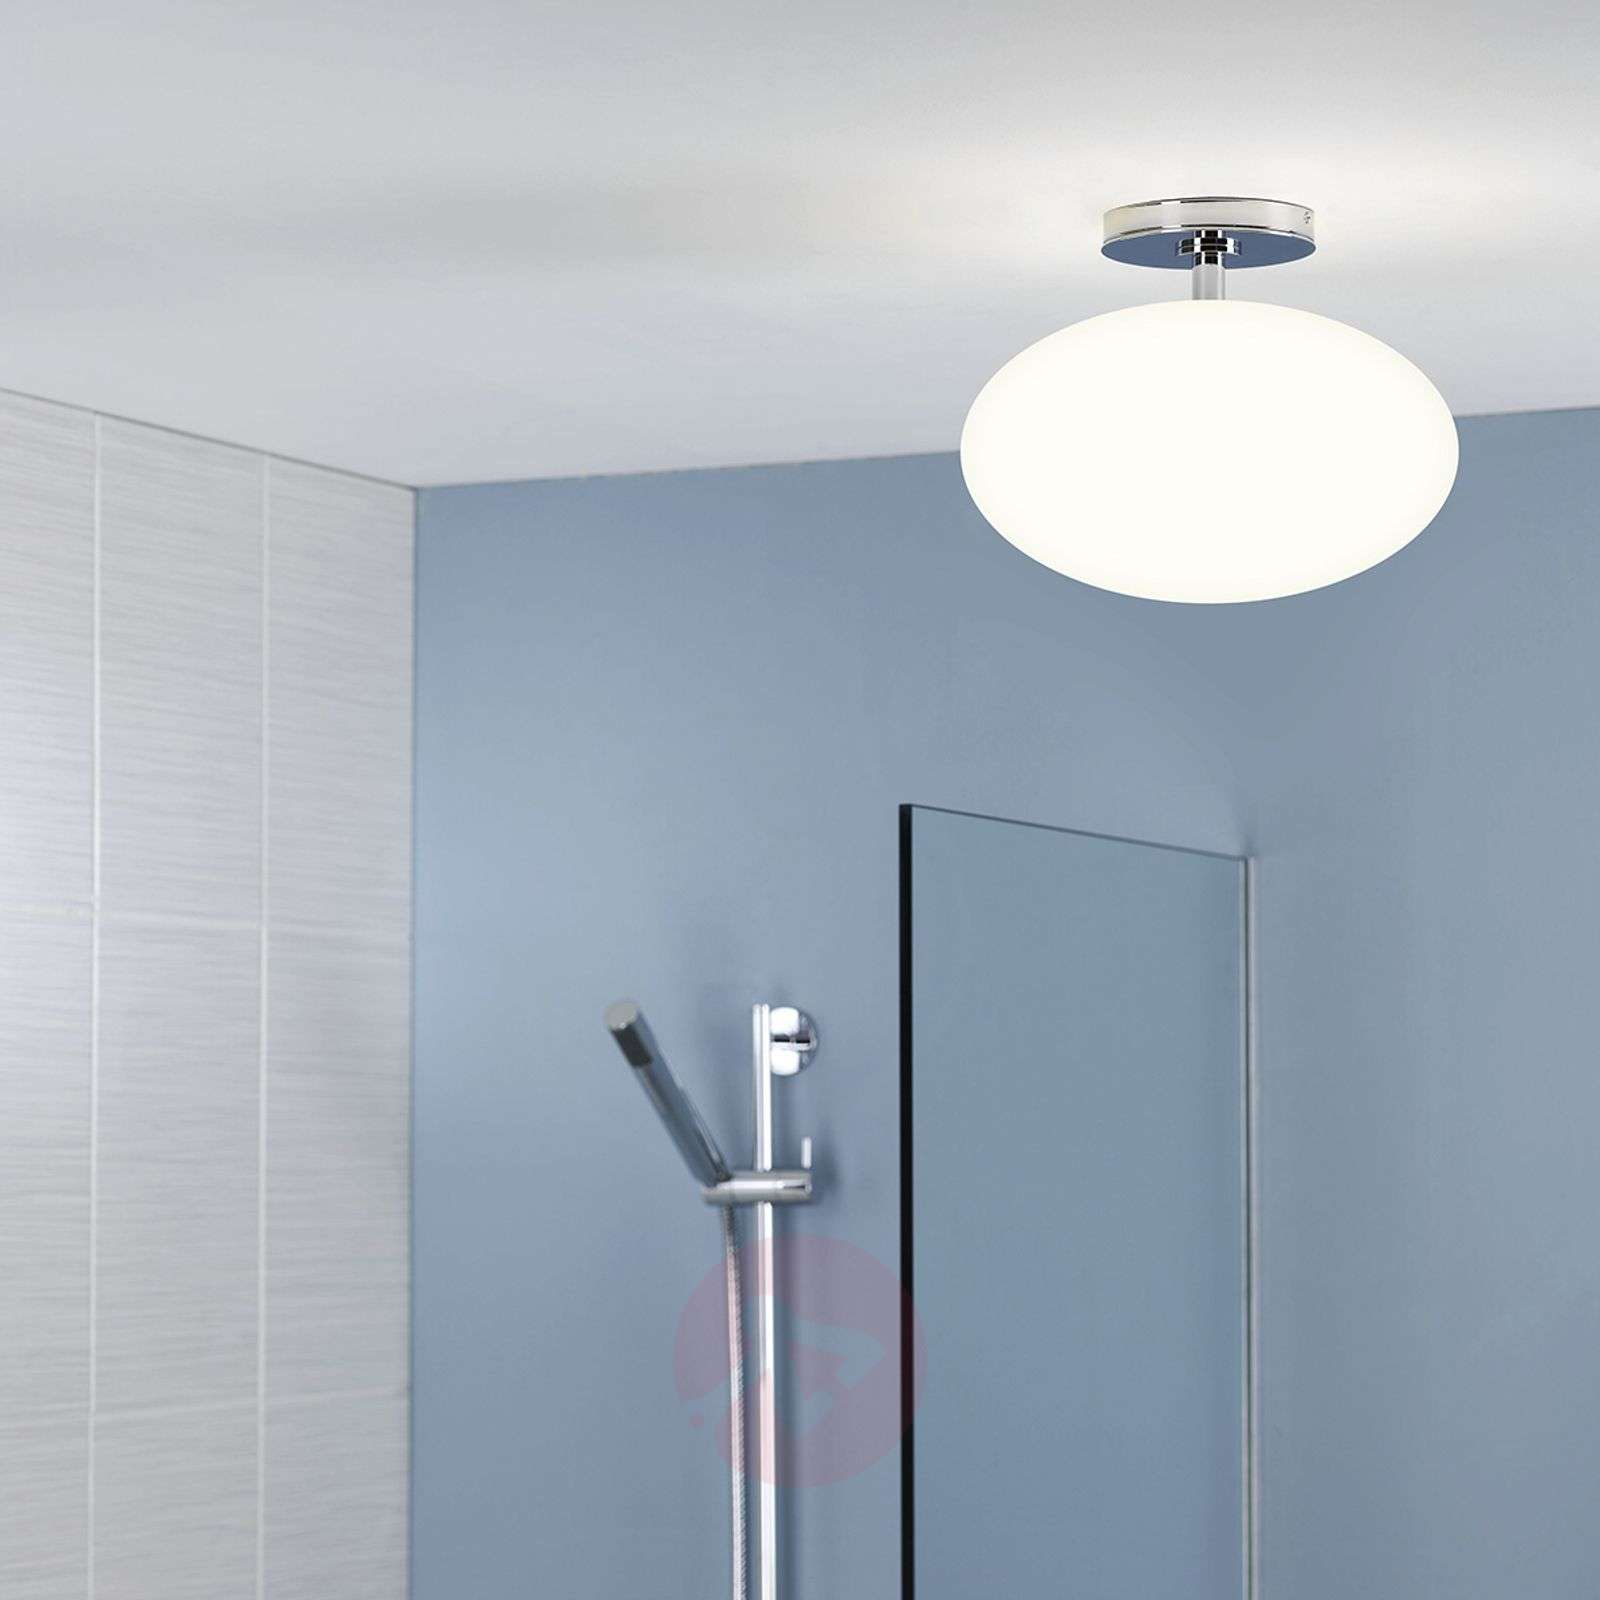 bathroom lights uk zeppo bathroom ceiling light oval ip44 lights co uk 10964